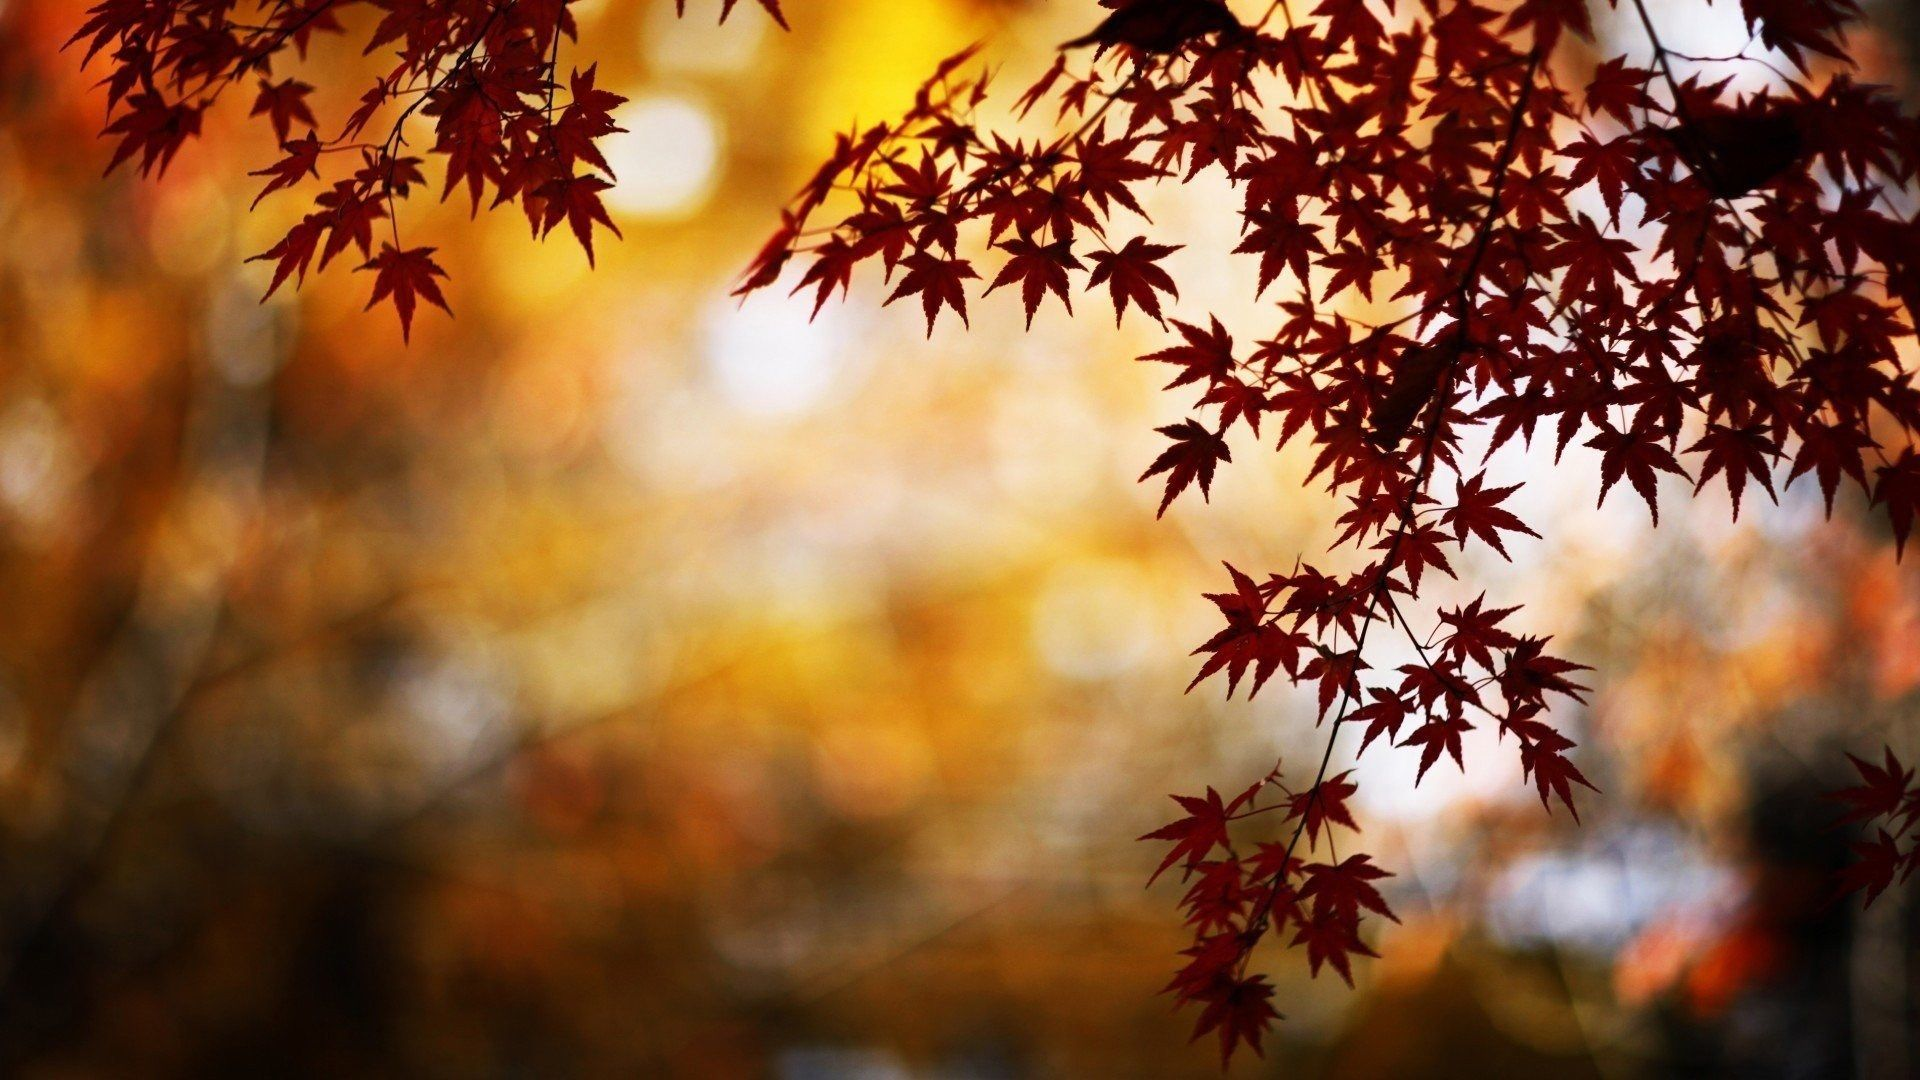 1920x1080 Nature Wallpaper For Desktop Background Autumn Leaves Wallpaper Bokeh Wallpaper Fall Wallpaper